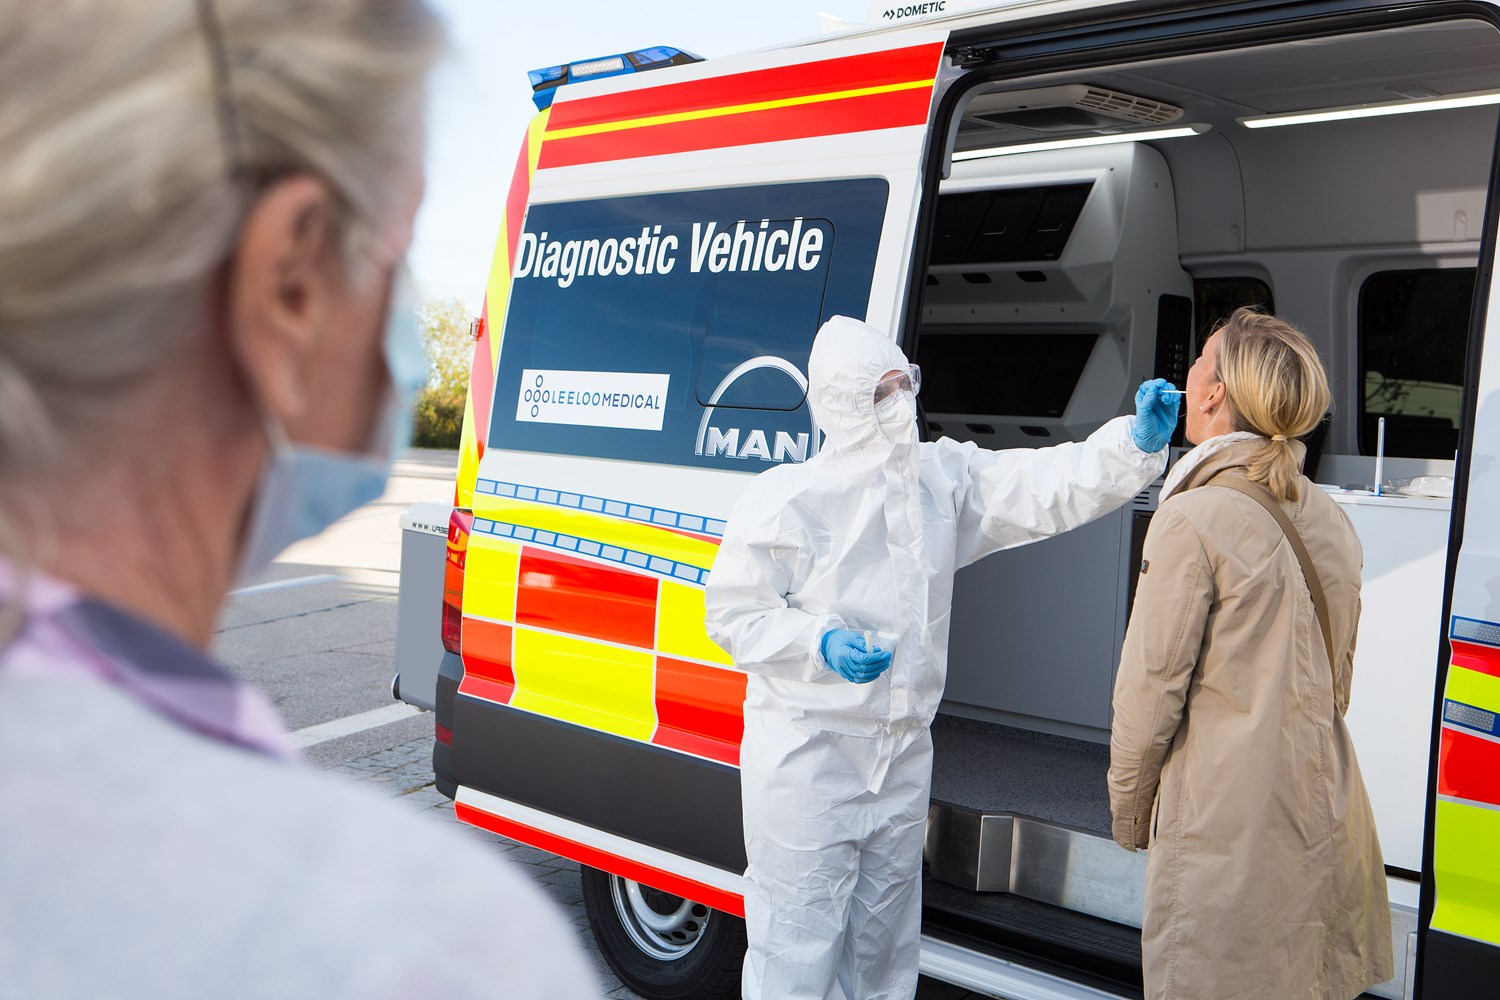 The innovative MAN Coronavirus diagnostic vehicle will make an important contribution to containing the Covid 19 pandemic by providing rapid on-site PCR test results.